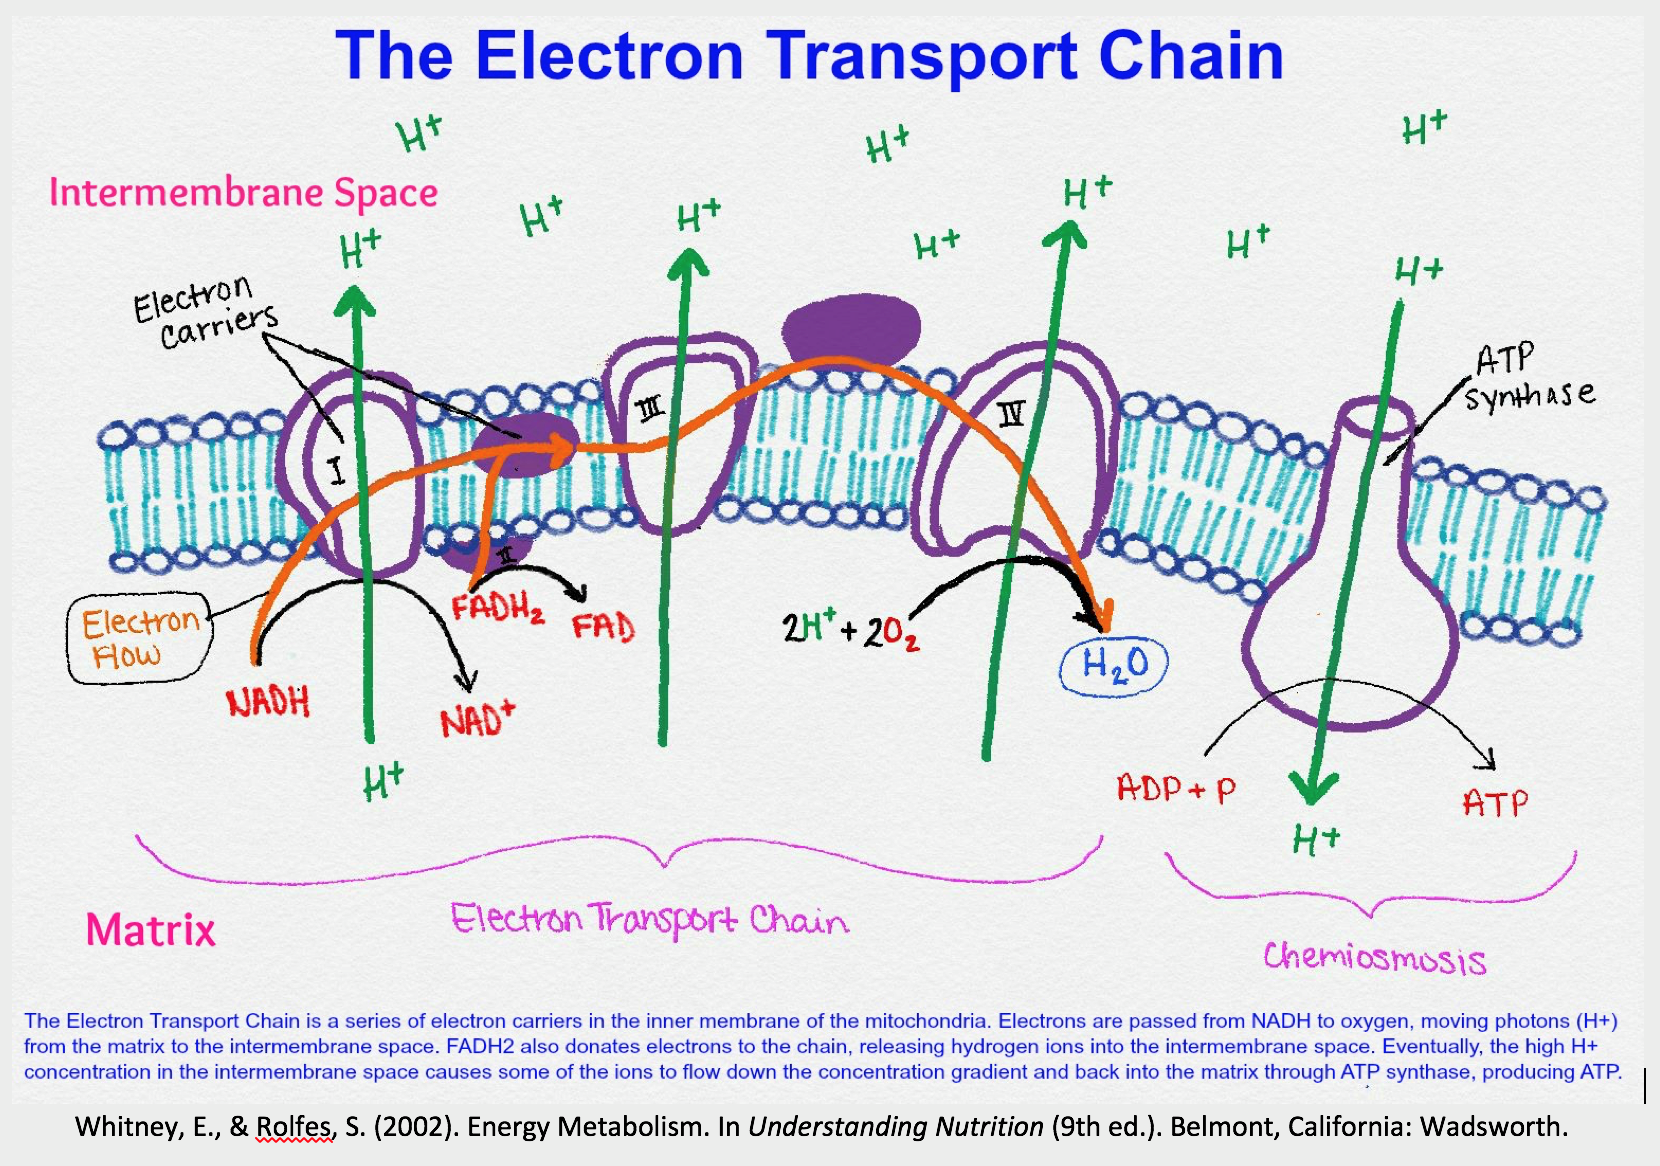 Fundamentals of human nutritionelectron transport chain wikibooks the electron transport chain etc pngg ccuart Choice Image